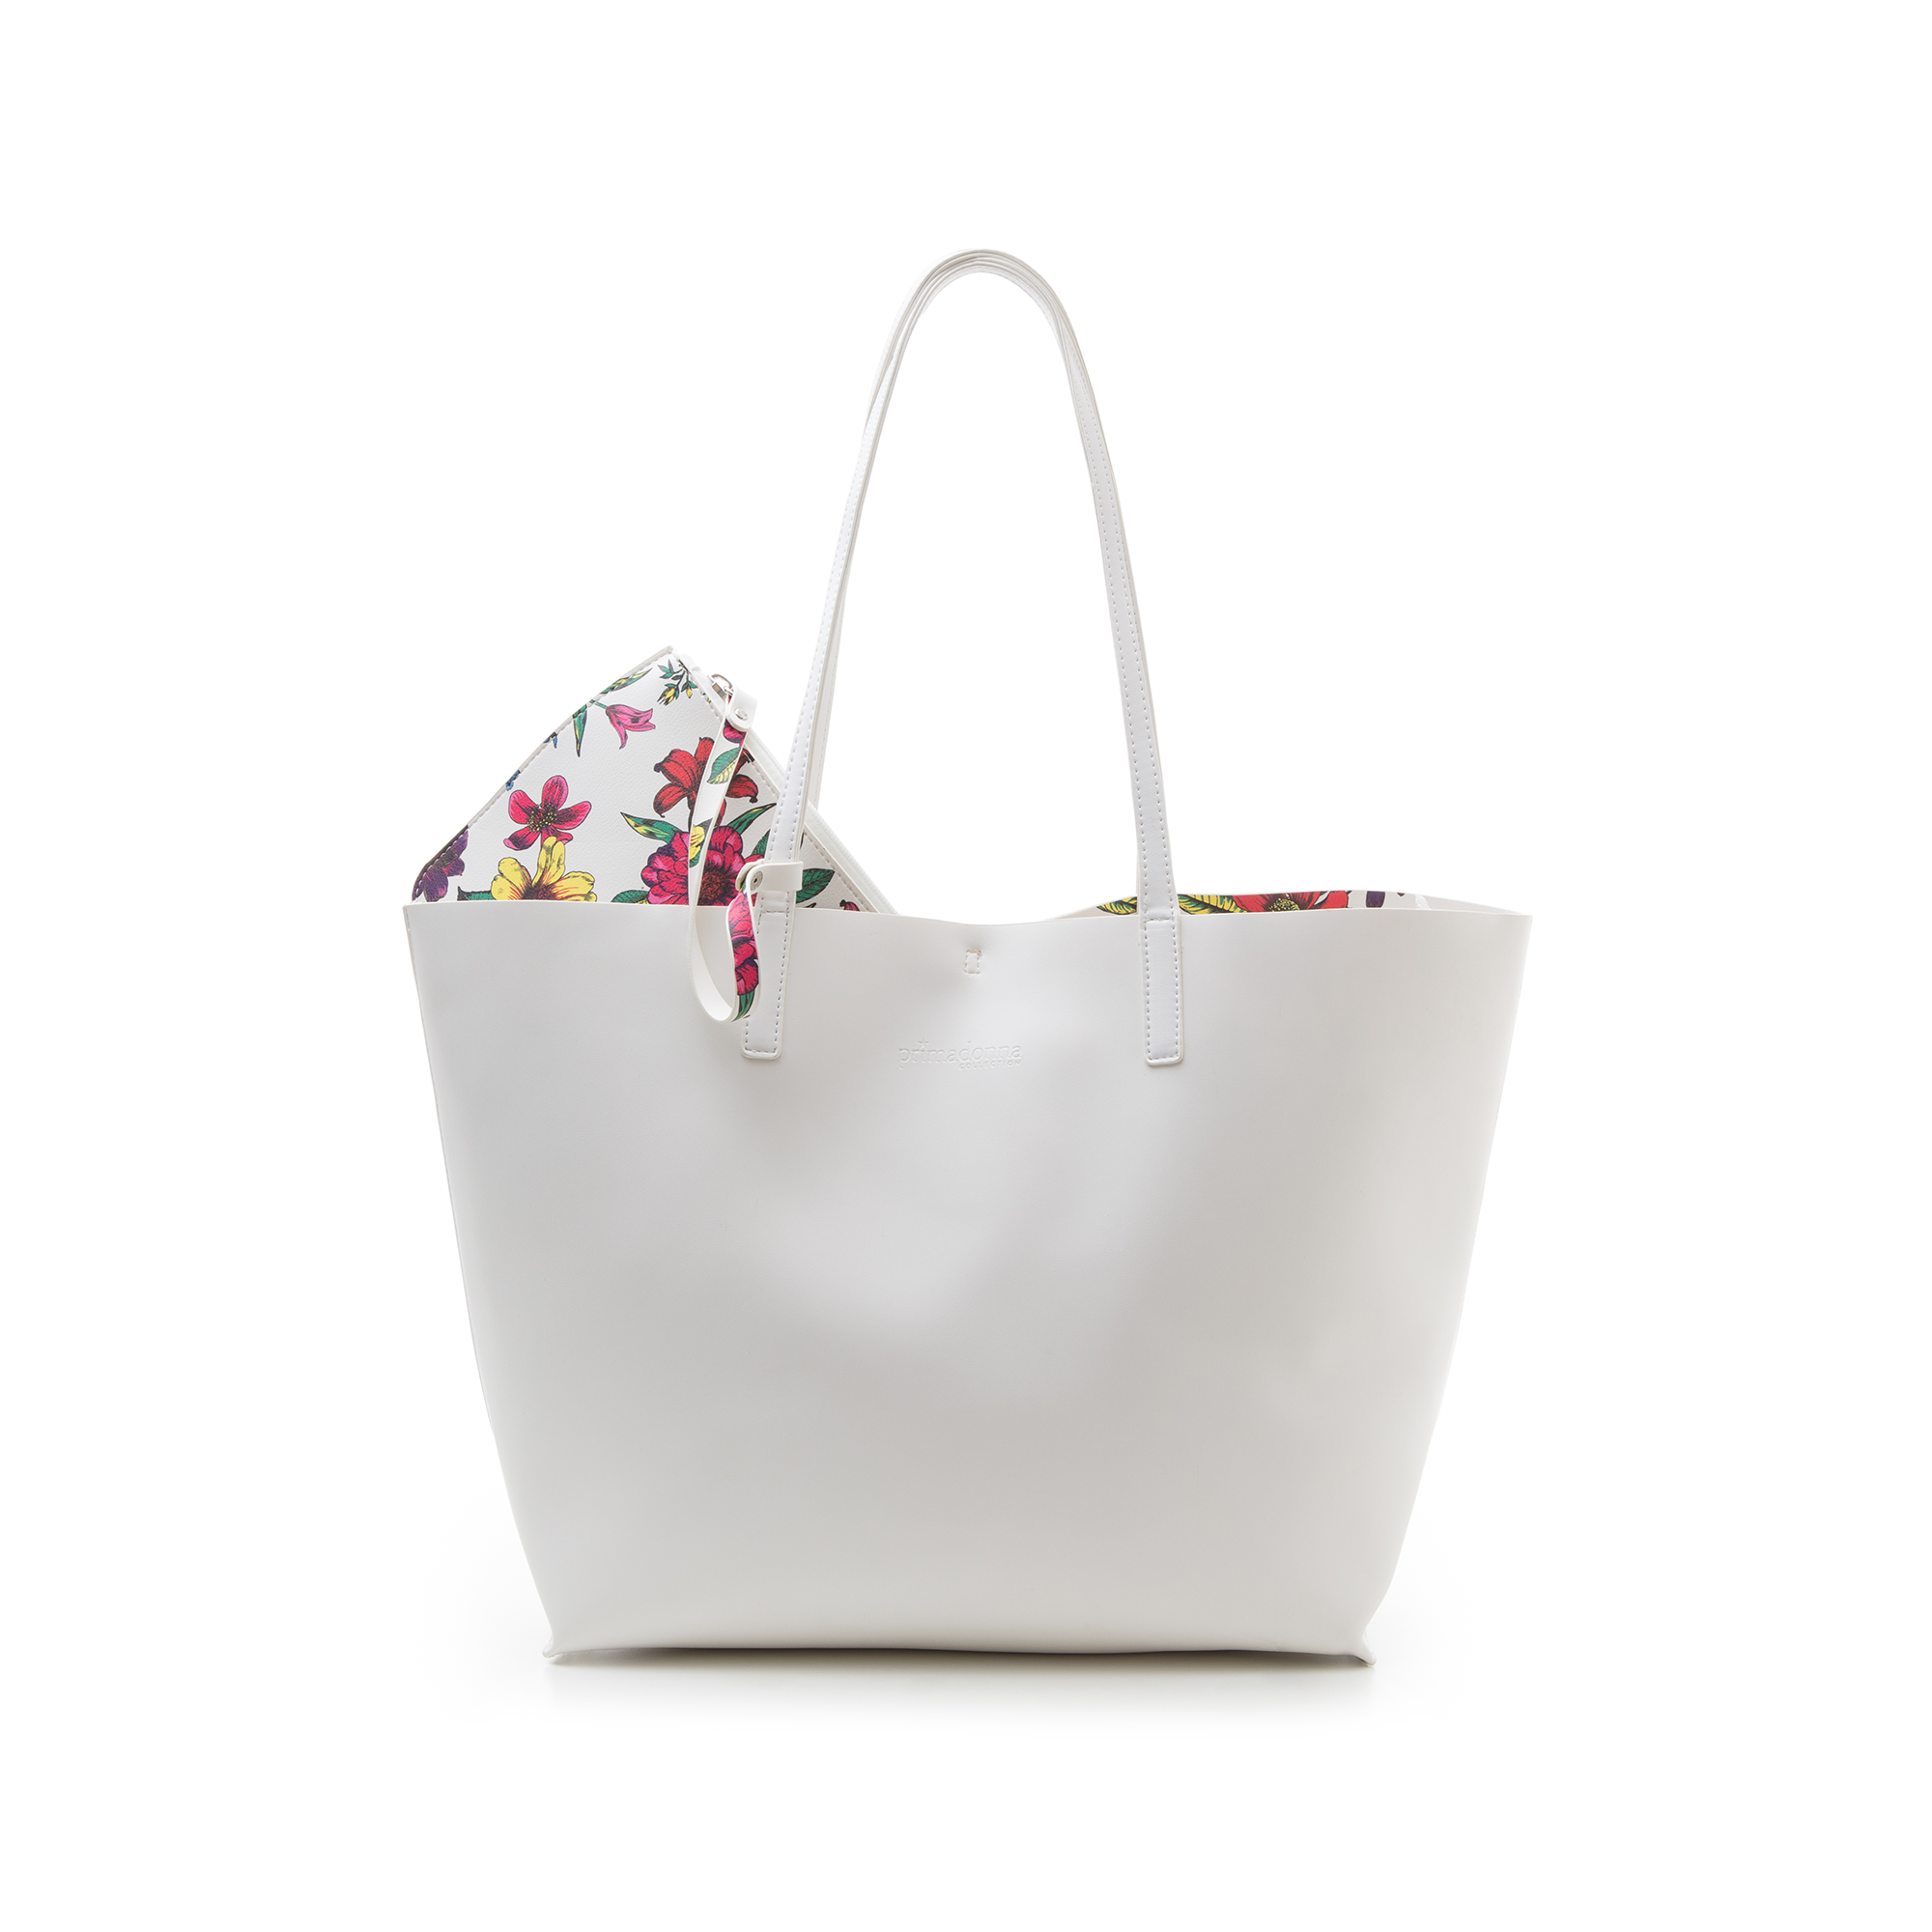 Shopping bag bianca in eco-pelle con pochette ed interni stampa floreale